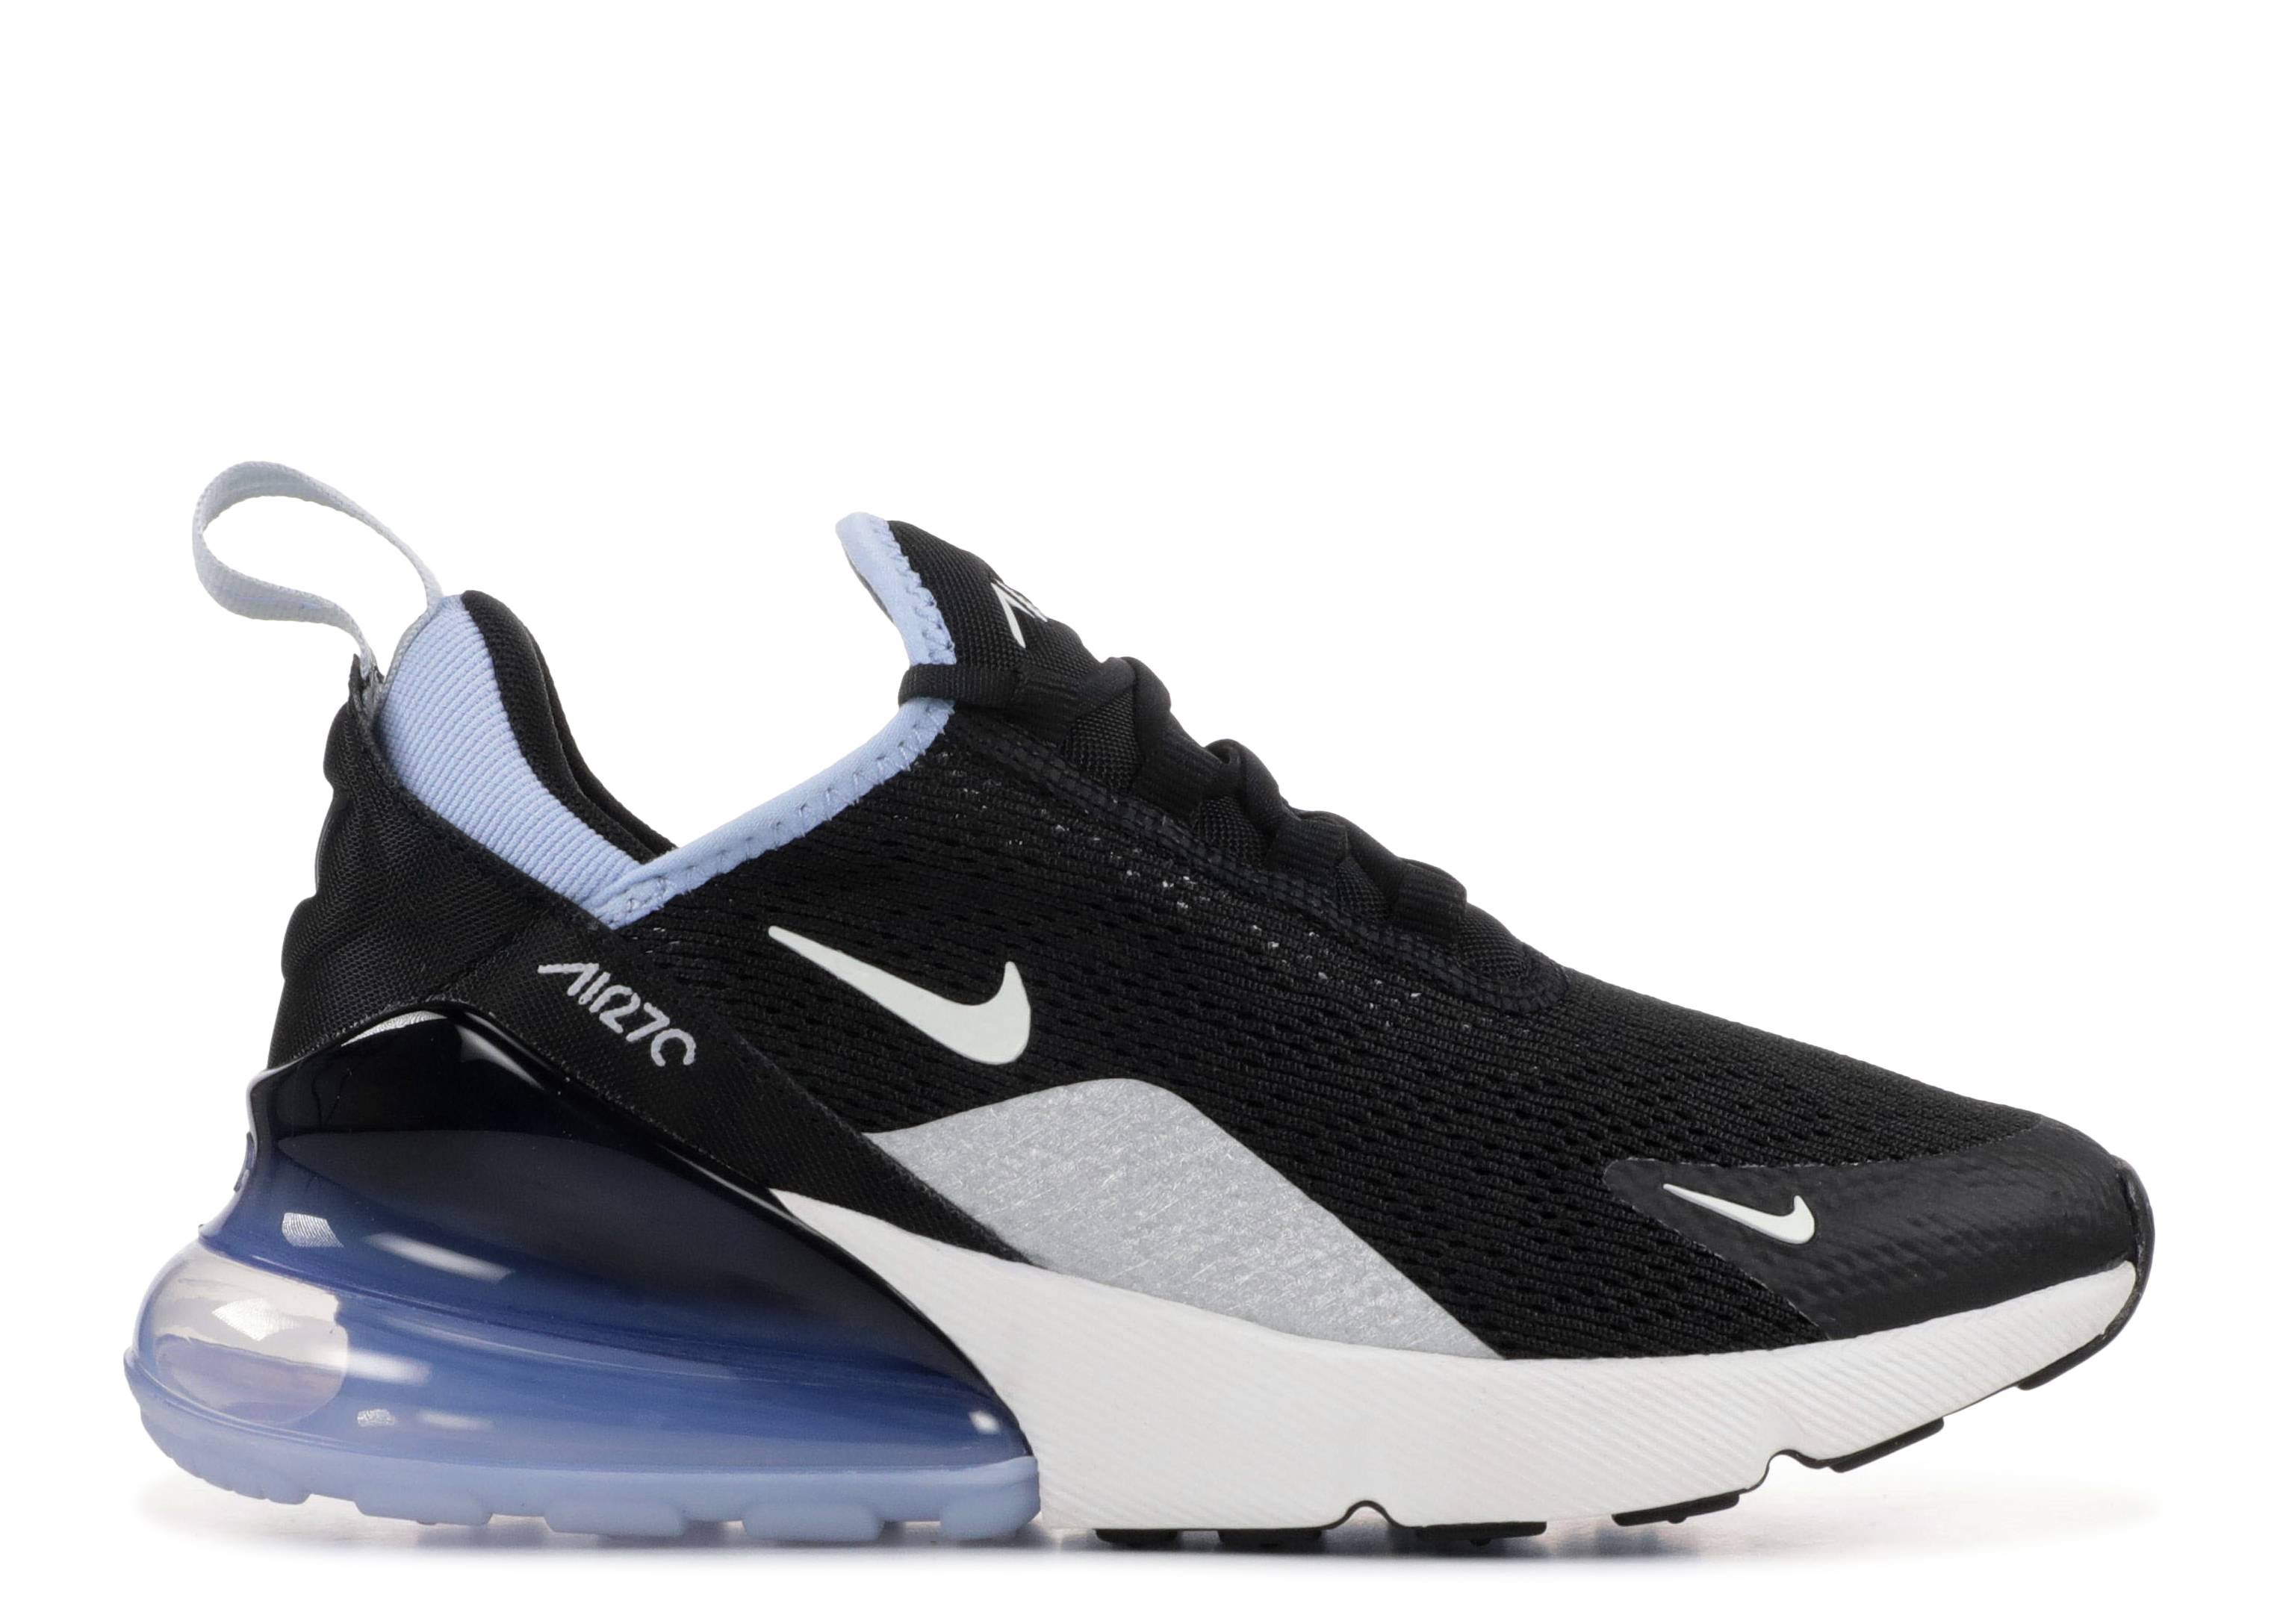 outlet store 2f0e5 58b1b W Air max 270